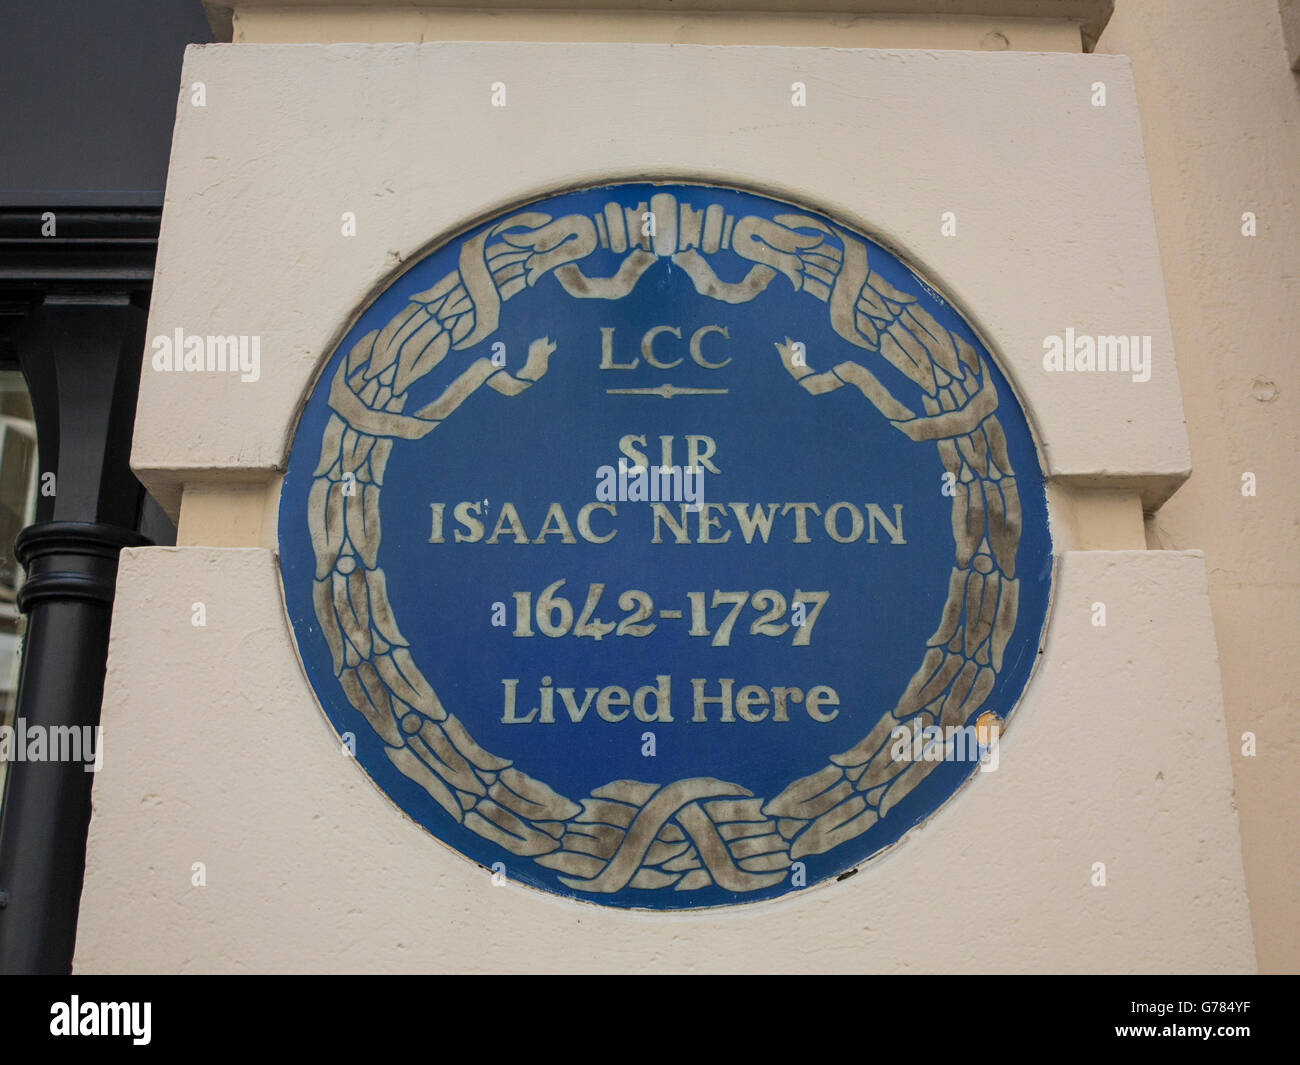 Sir Isaac Newton blue plaque - Stock Image